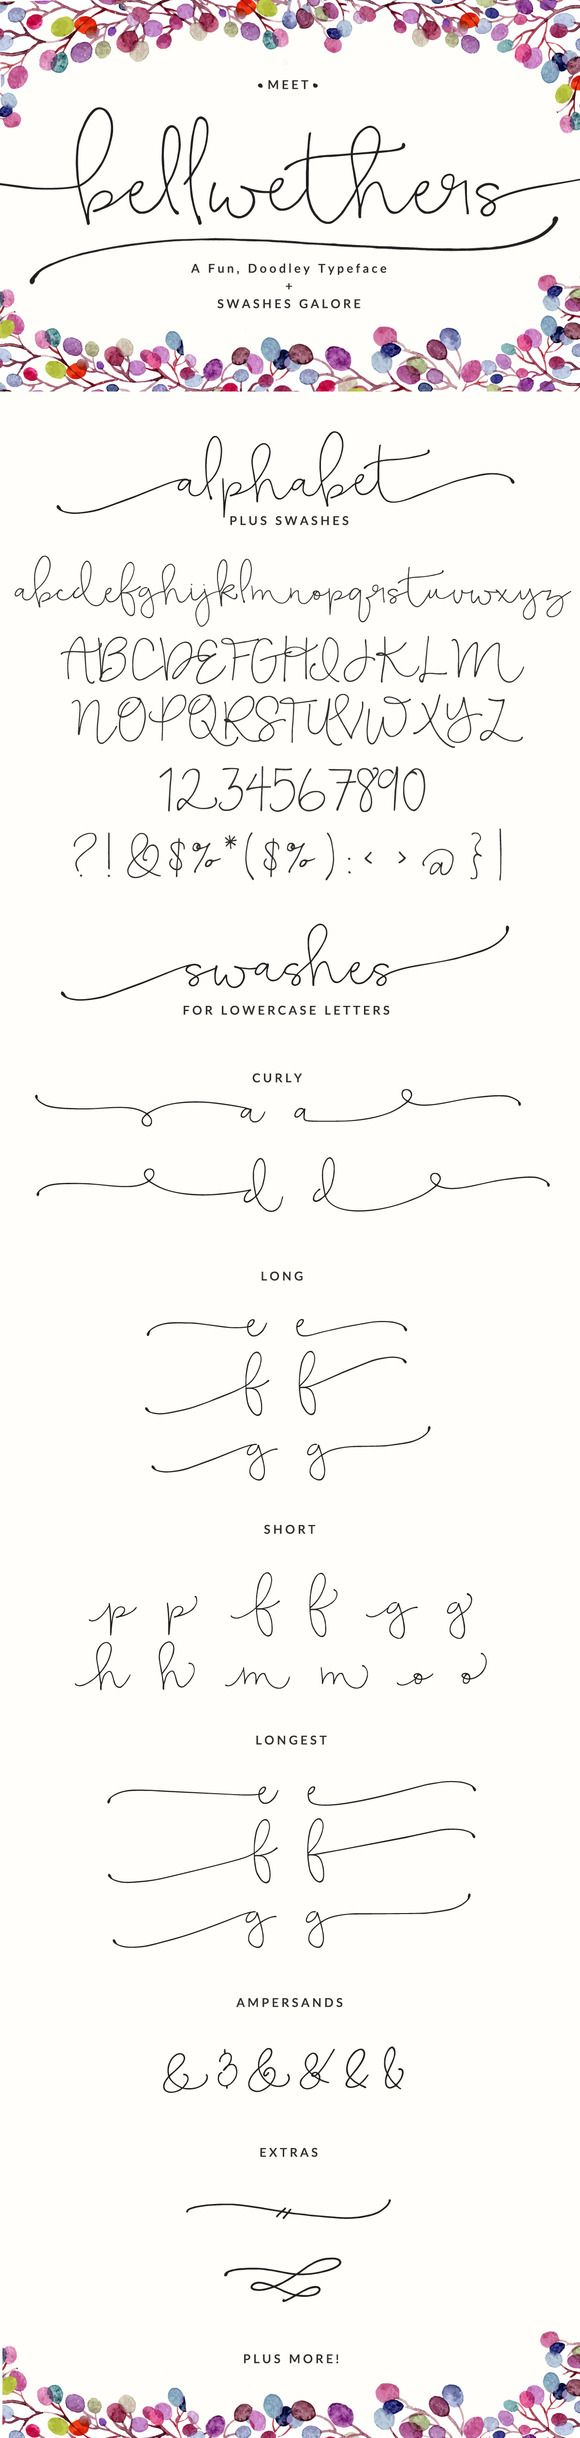 "ME ENCANTA ESTE FONT-algo así creo que sería bonito pero maybe es too playful para el logo. Creo que quiero algo más ""grown up"". I pin it para que conozcas un poco mi gusto Meet the latest Angie Makes font... Bellwethers. This Modern Calligraphy, Doodely font is full of lovely swashes. It's fun to play with and use in those projects that need a fun little swash!"